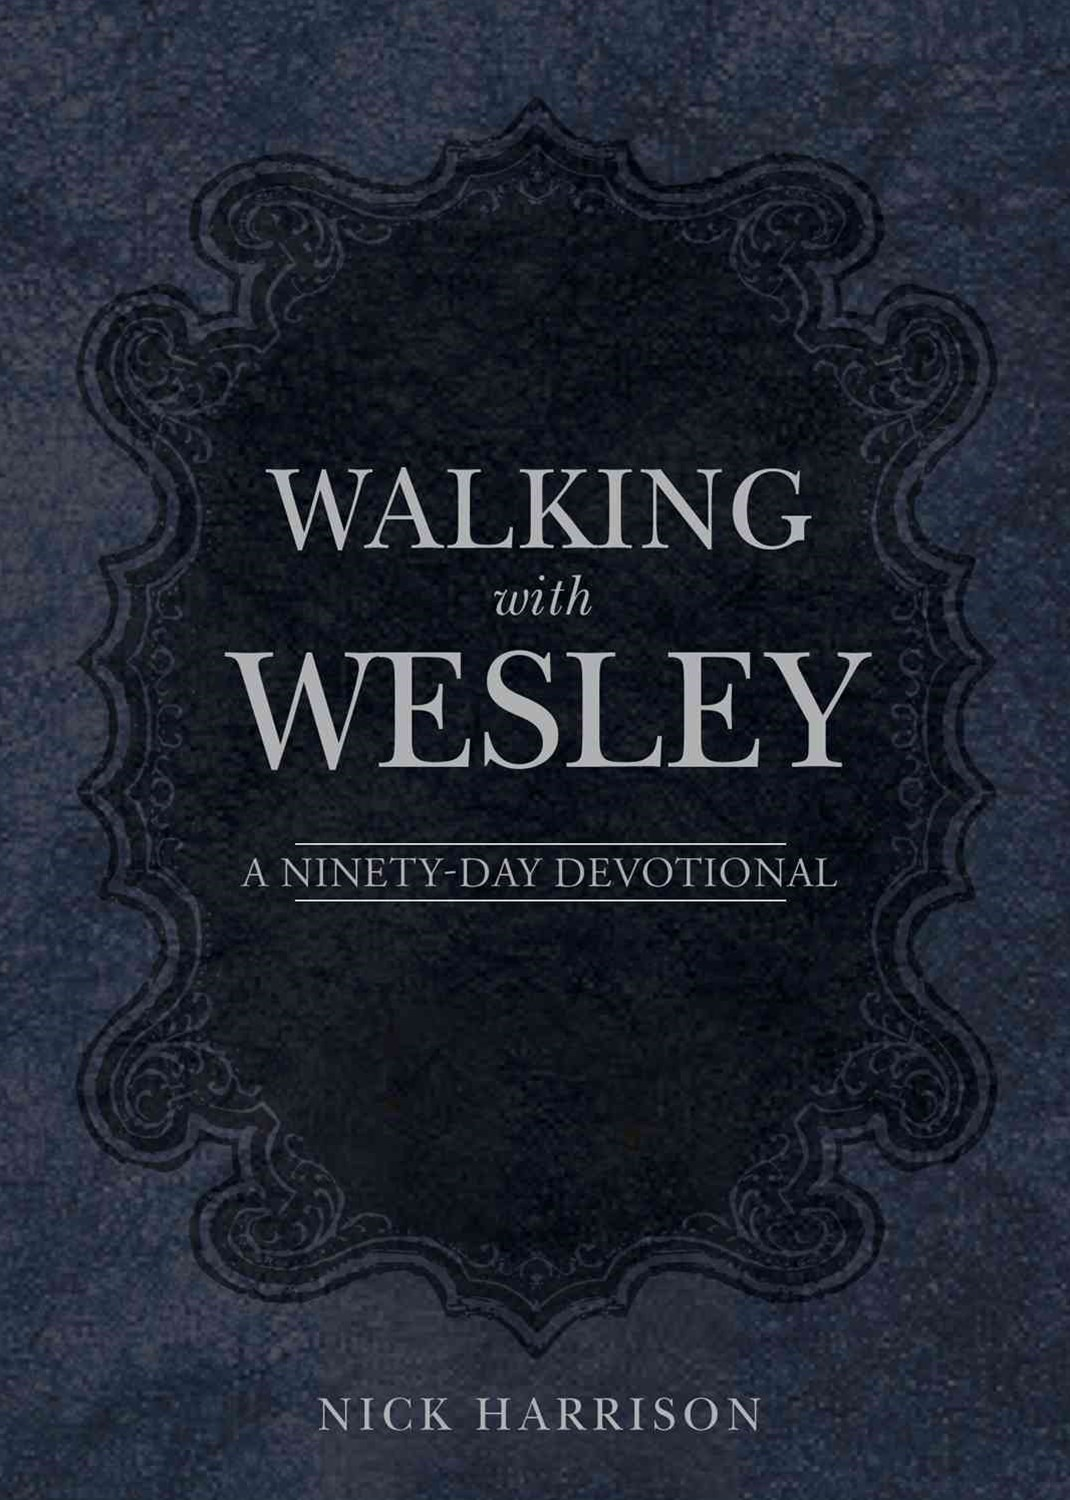 Walking with Wesley